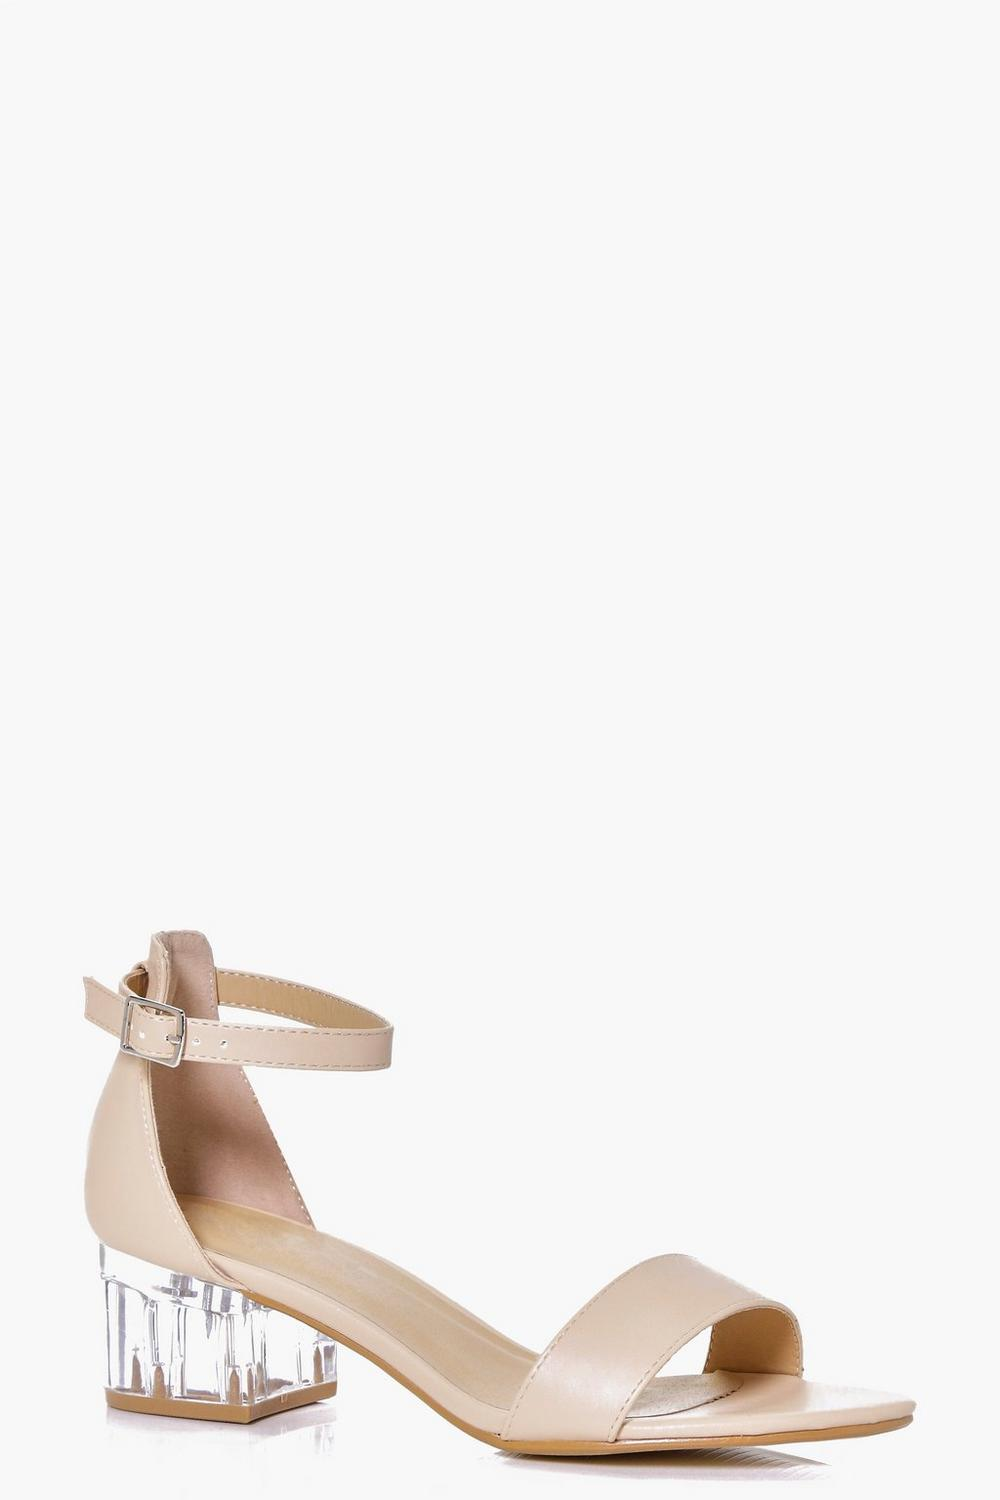 save up to 80% best selection of discount collection Violet Clear Low Block Heel Sandal | Boohoo